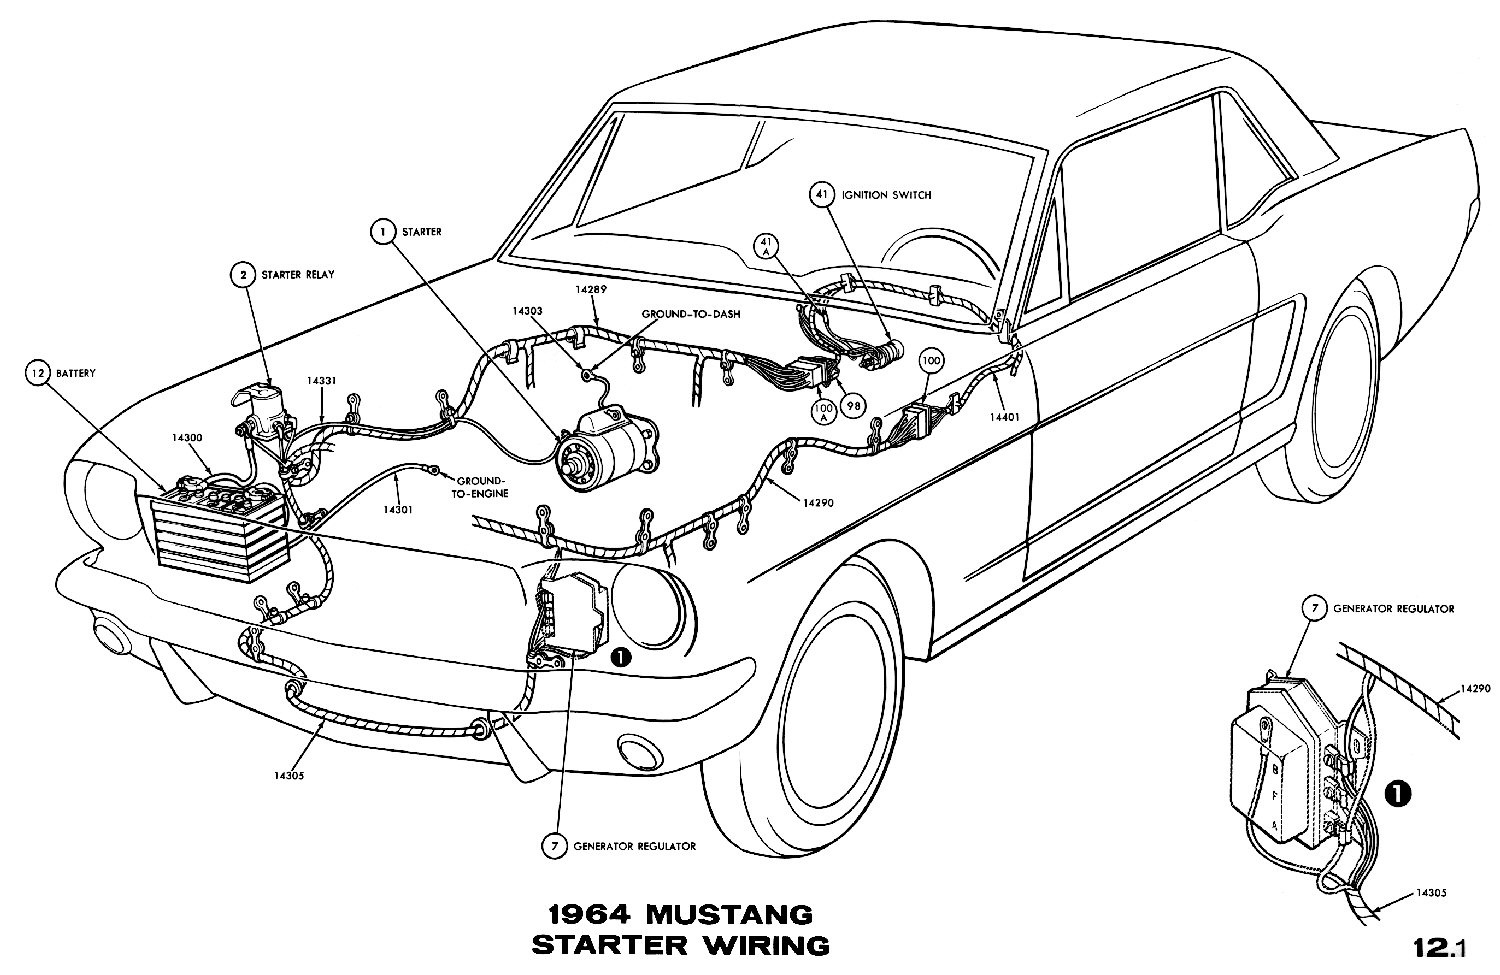 1964 Mustang Wiring Diagrams on 1965 Mustang Steering Column